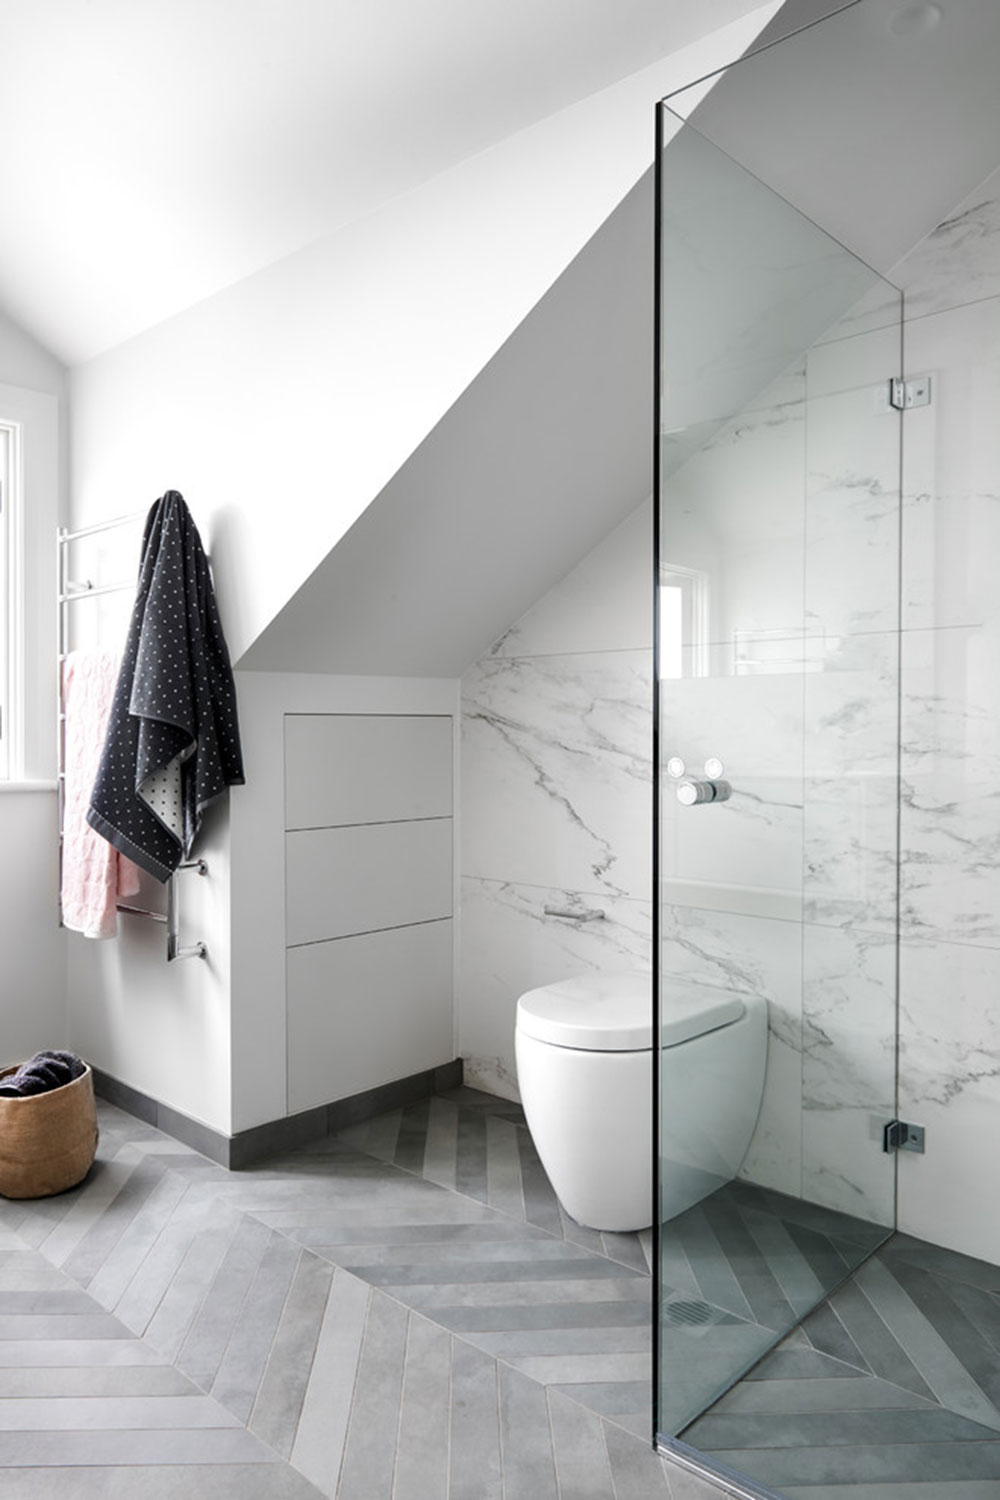 Bathroom Under Stairs And Tips And Best Practices For This Space